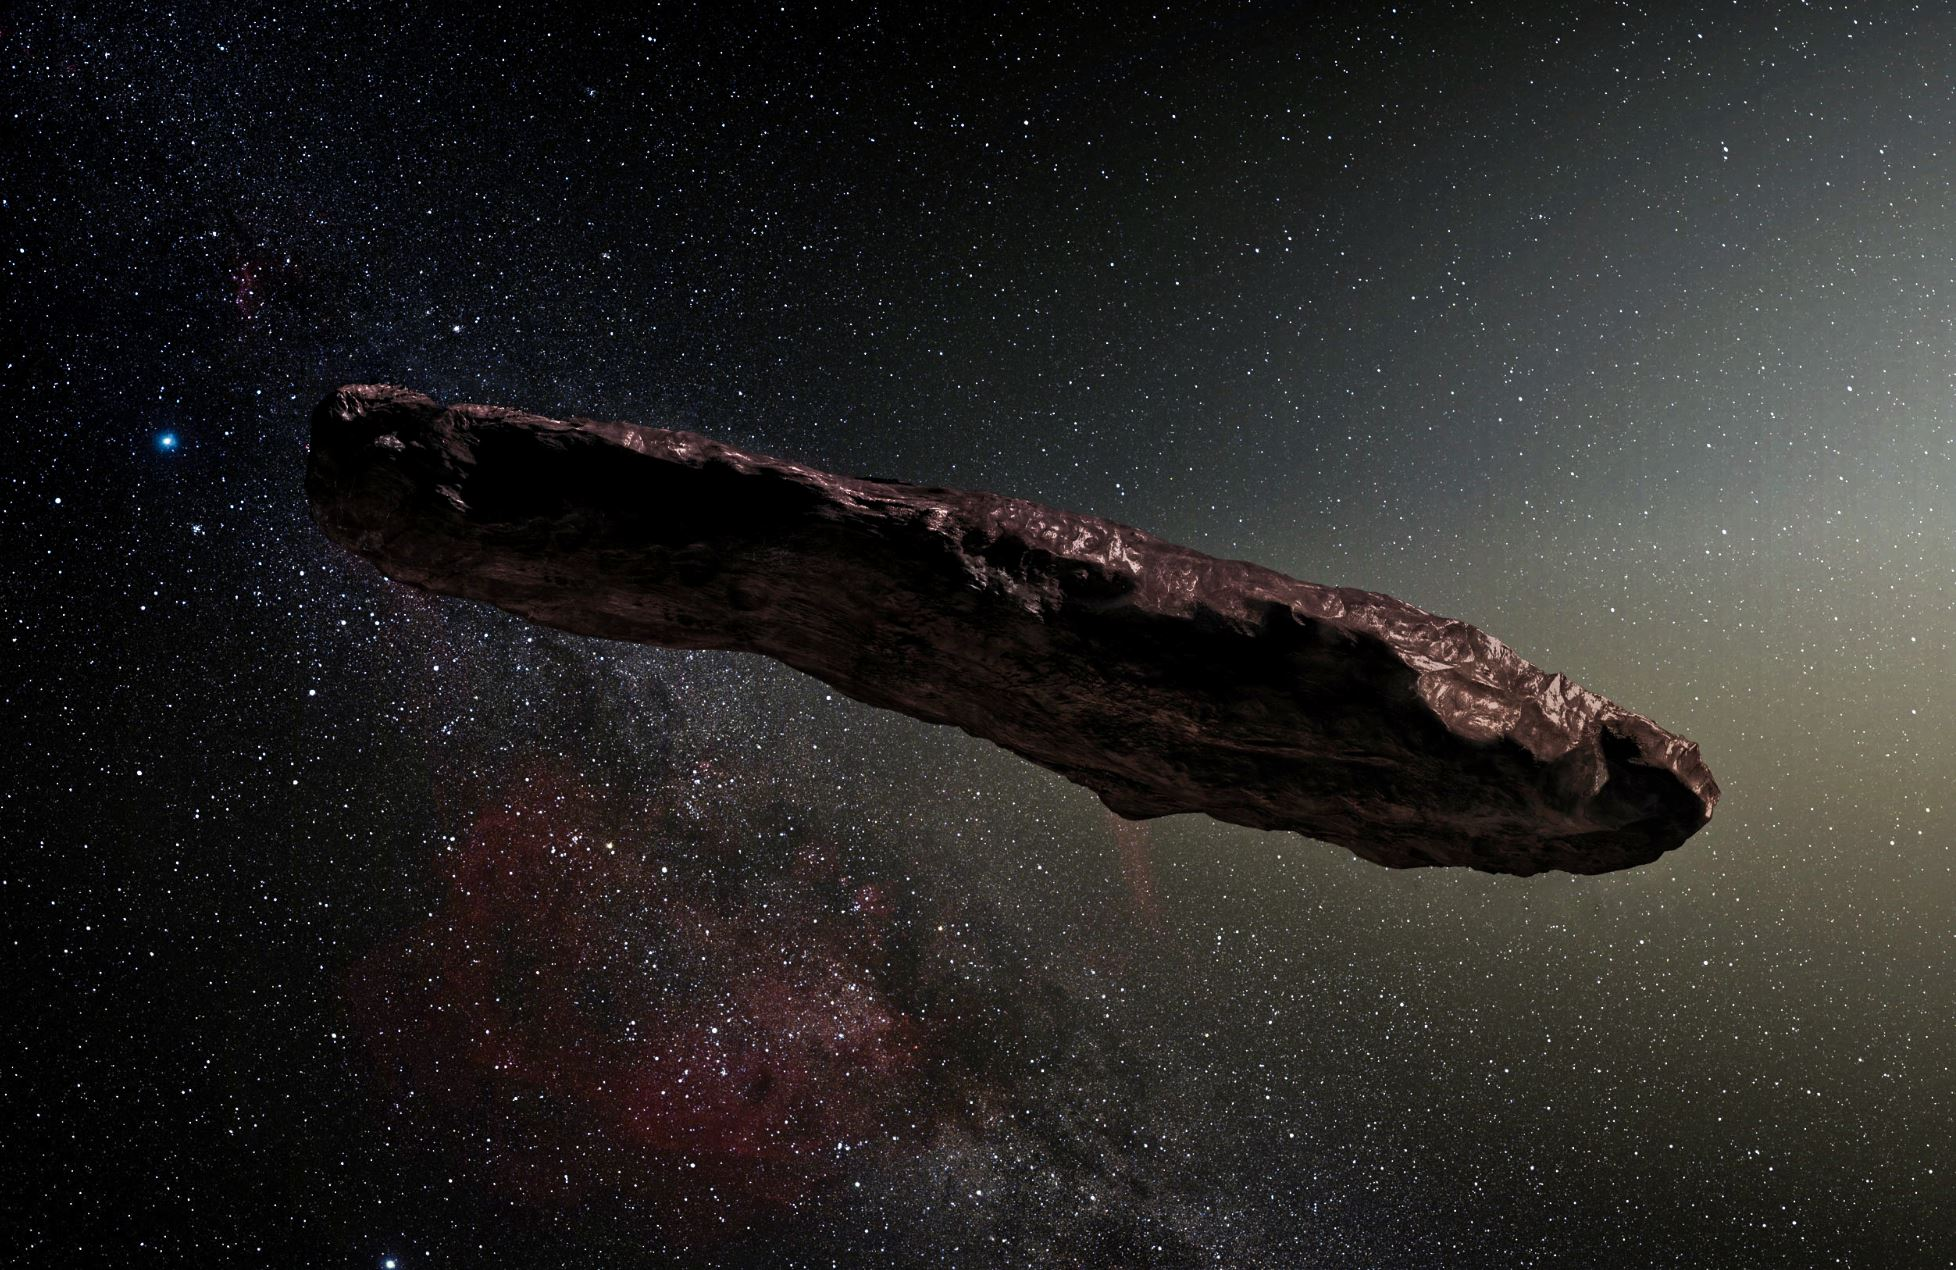 An artist's impression of ʻOumuamua, the first known interstellar object to pass through our Solar System - Image Credit: Original:  ESO/M. Kornmesser, Derivative: nagualdesign via Wikimedia Commons  - HDR tune by  Universal-Sci